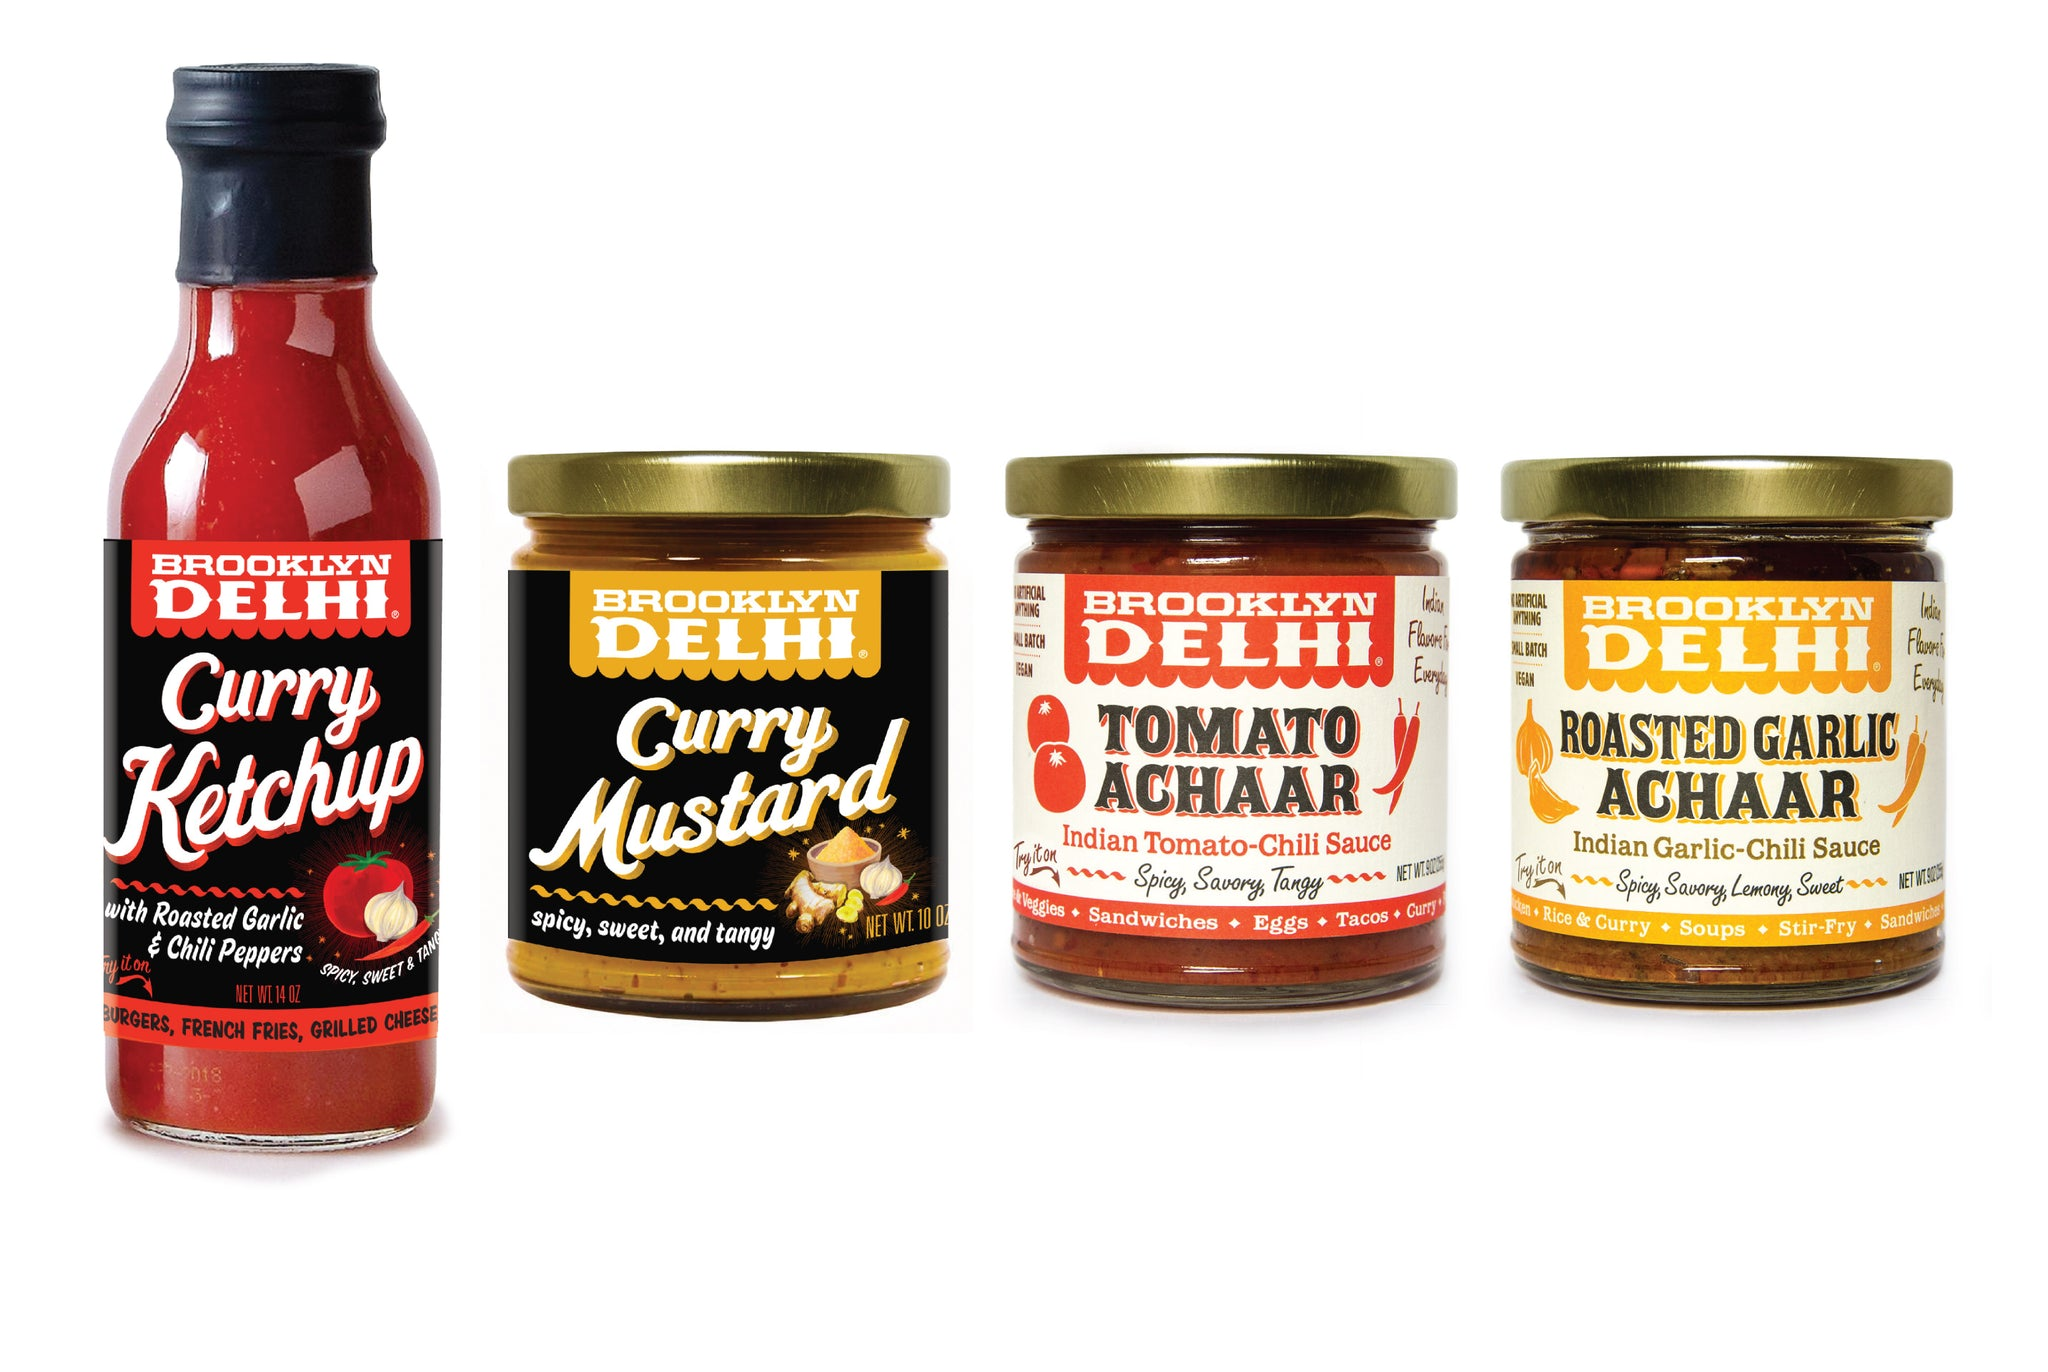 Brooklyn Delhi Sampler Pack - All 4 Flavors